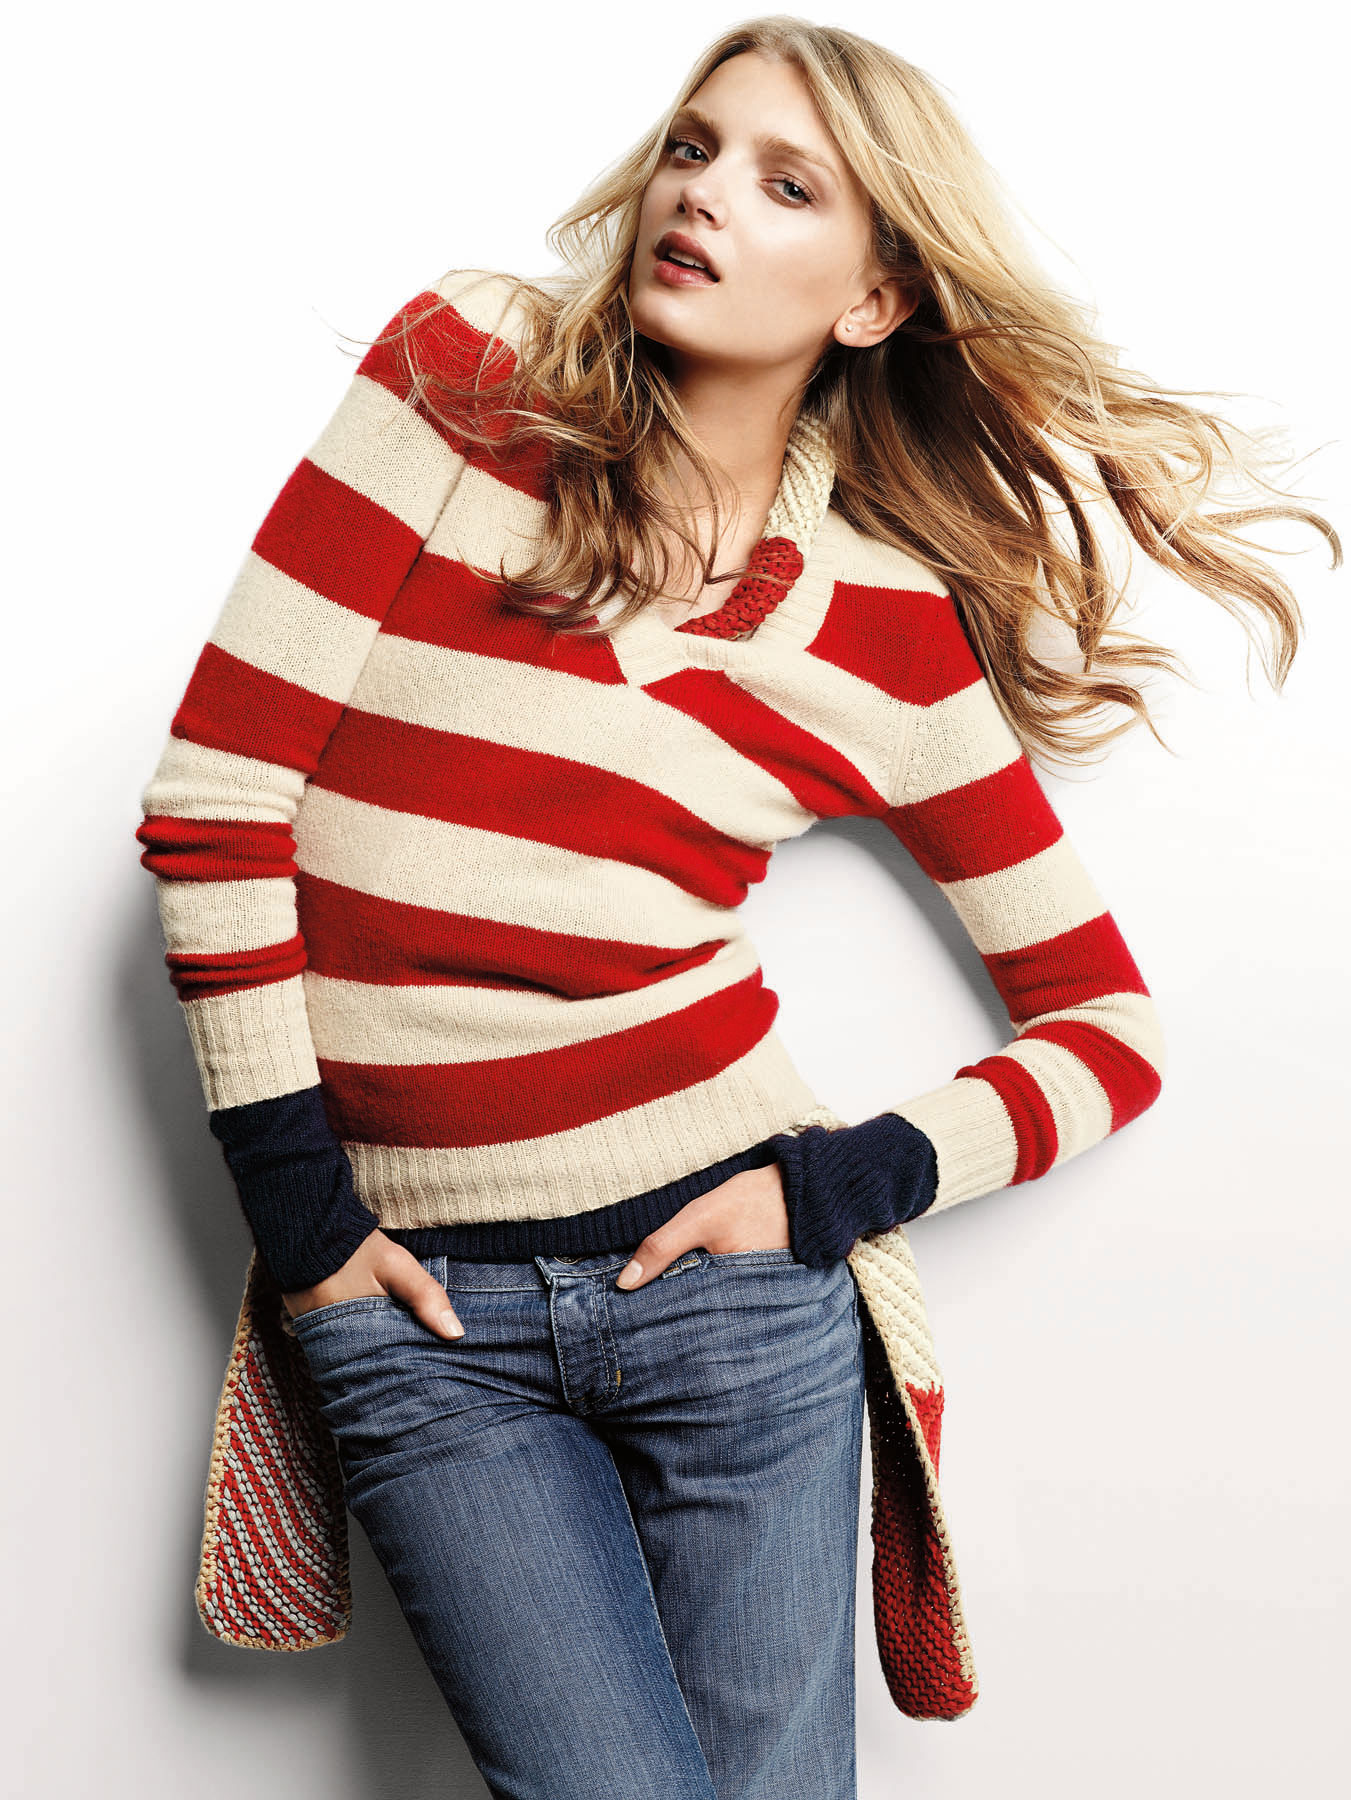 Beautiful Down to Earth Lily Donaldson